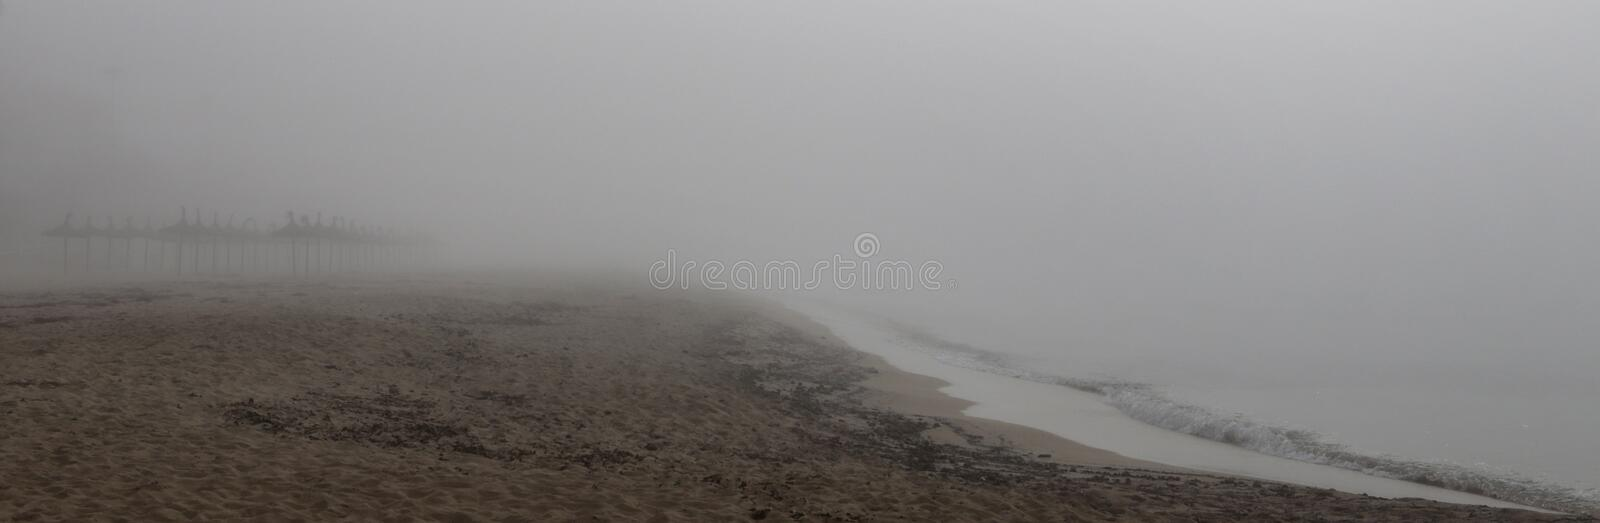 Unusual Fog in el arenal beach in mallorca wide. Rare and unusual heavy fog over the coast with sun umbrellas and shoreline of El Arenal beach touristic area royalty free stock photos